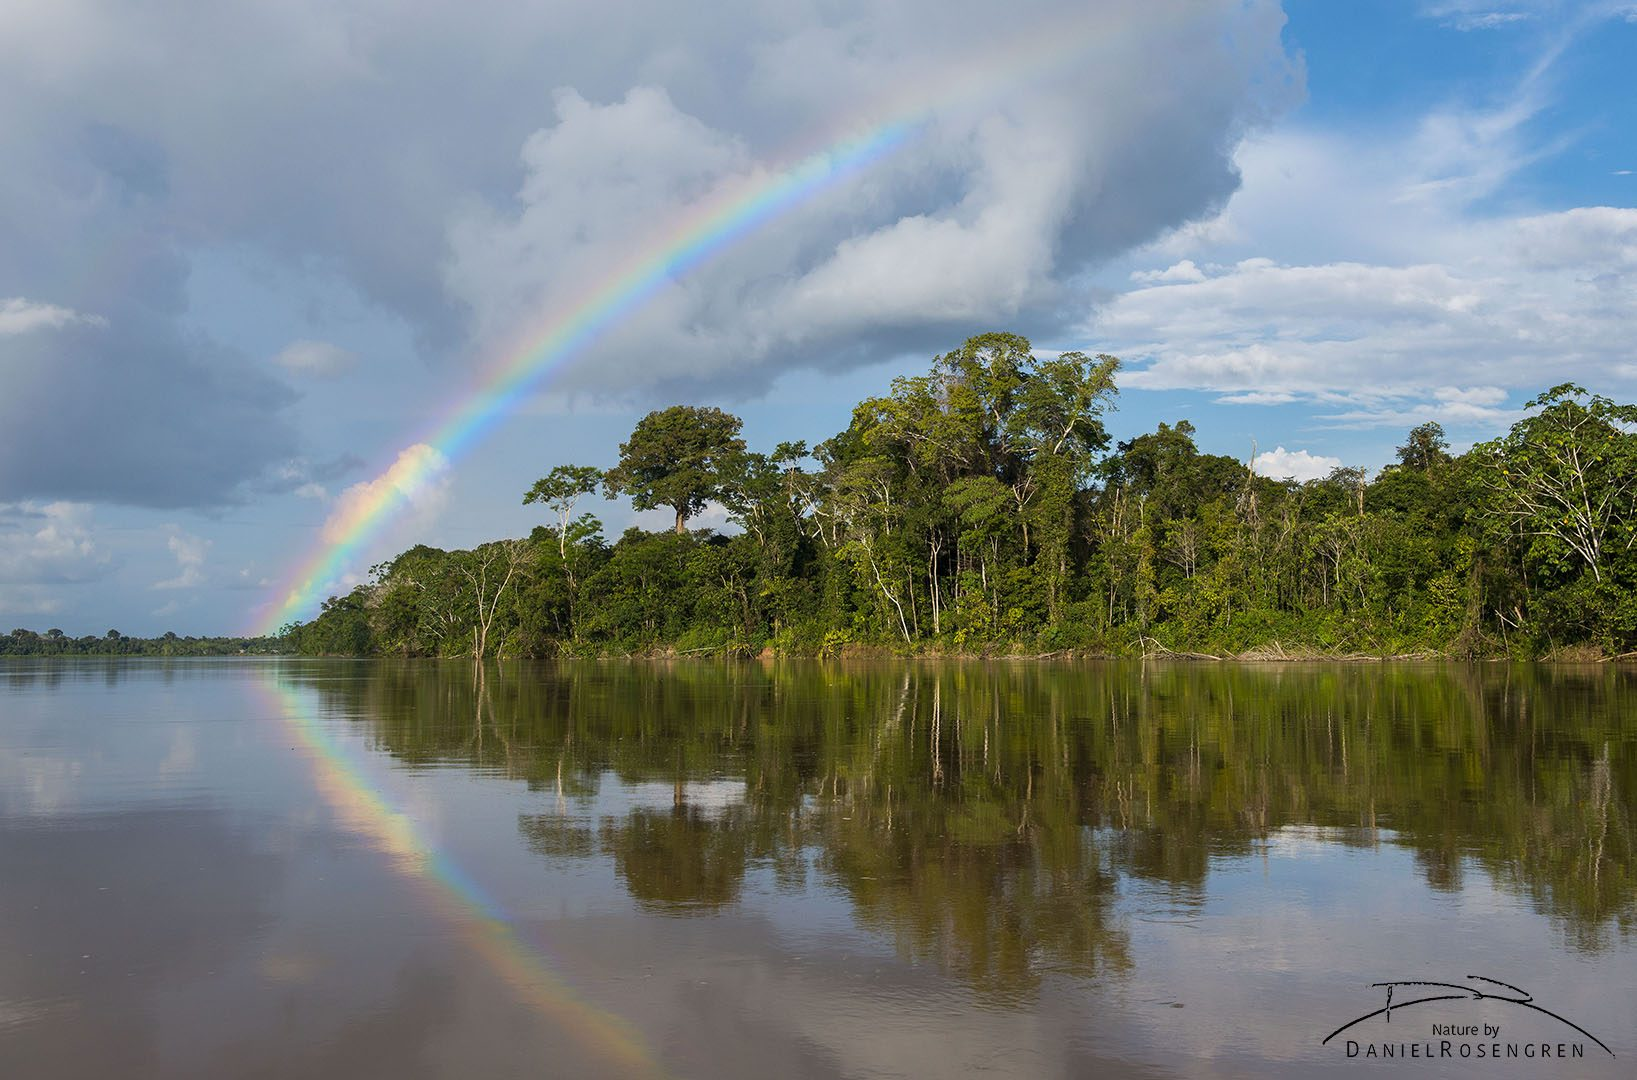 Rainbow over the rainforest. © Daniel Rosengren